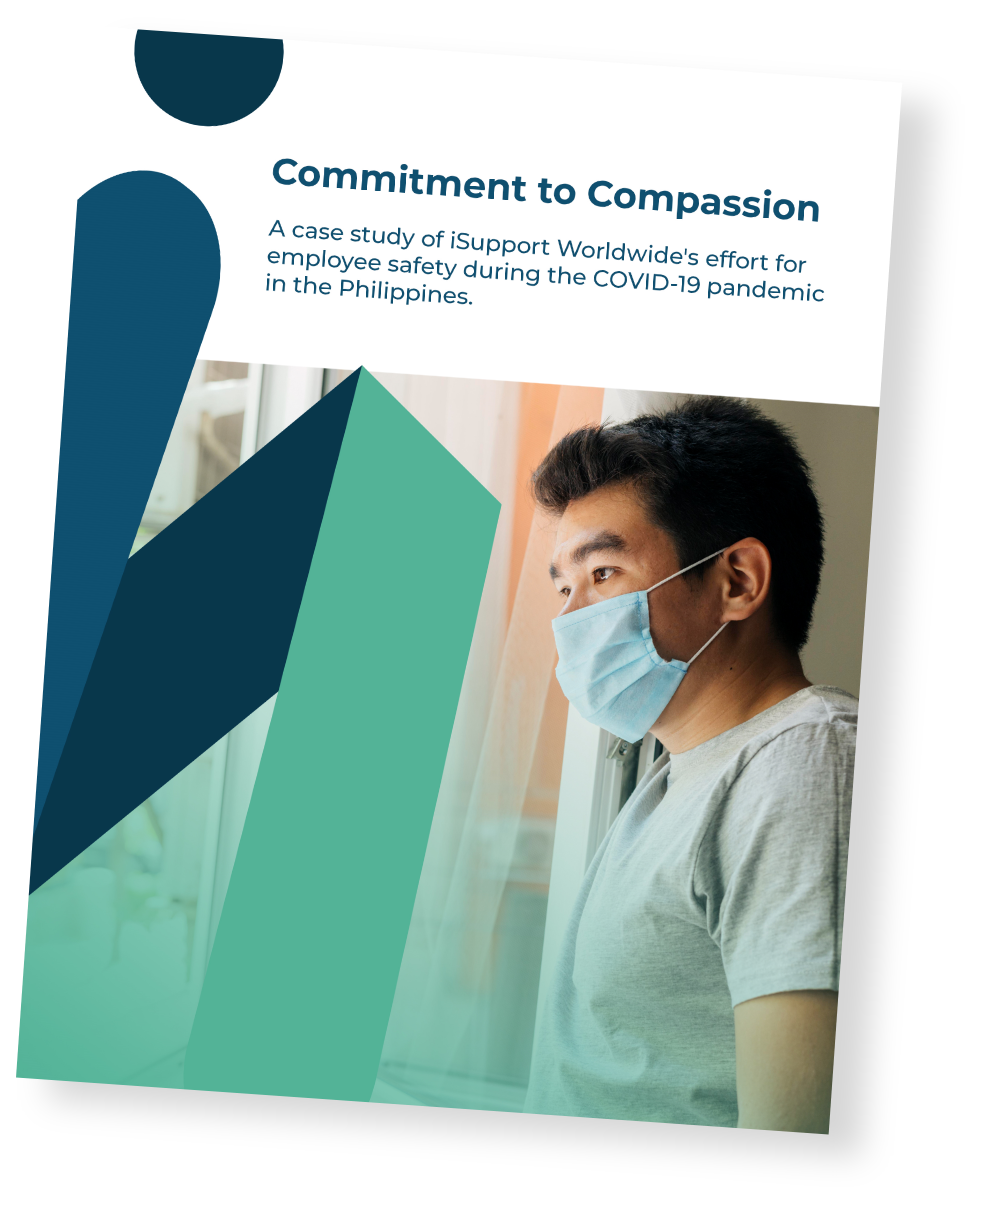 commitment to compassion